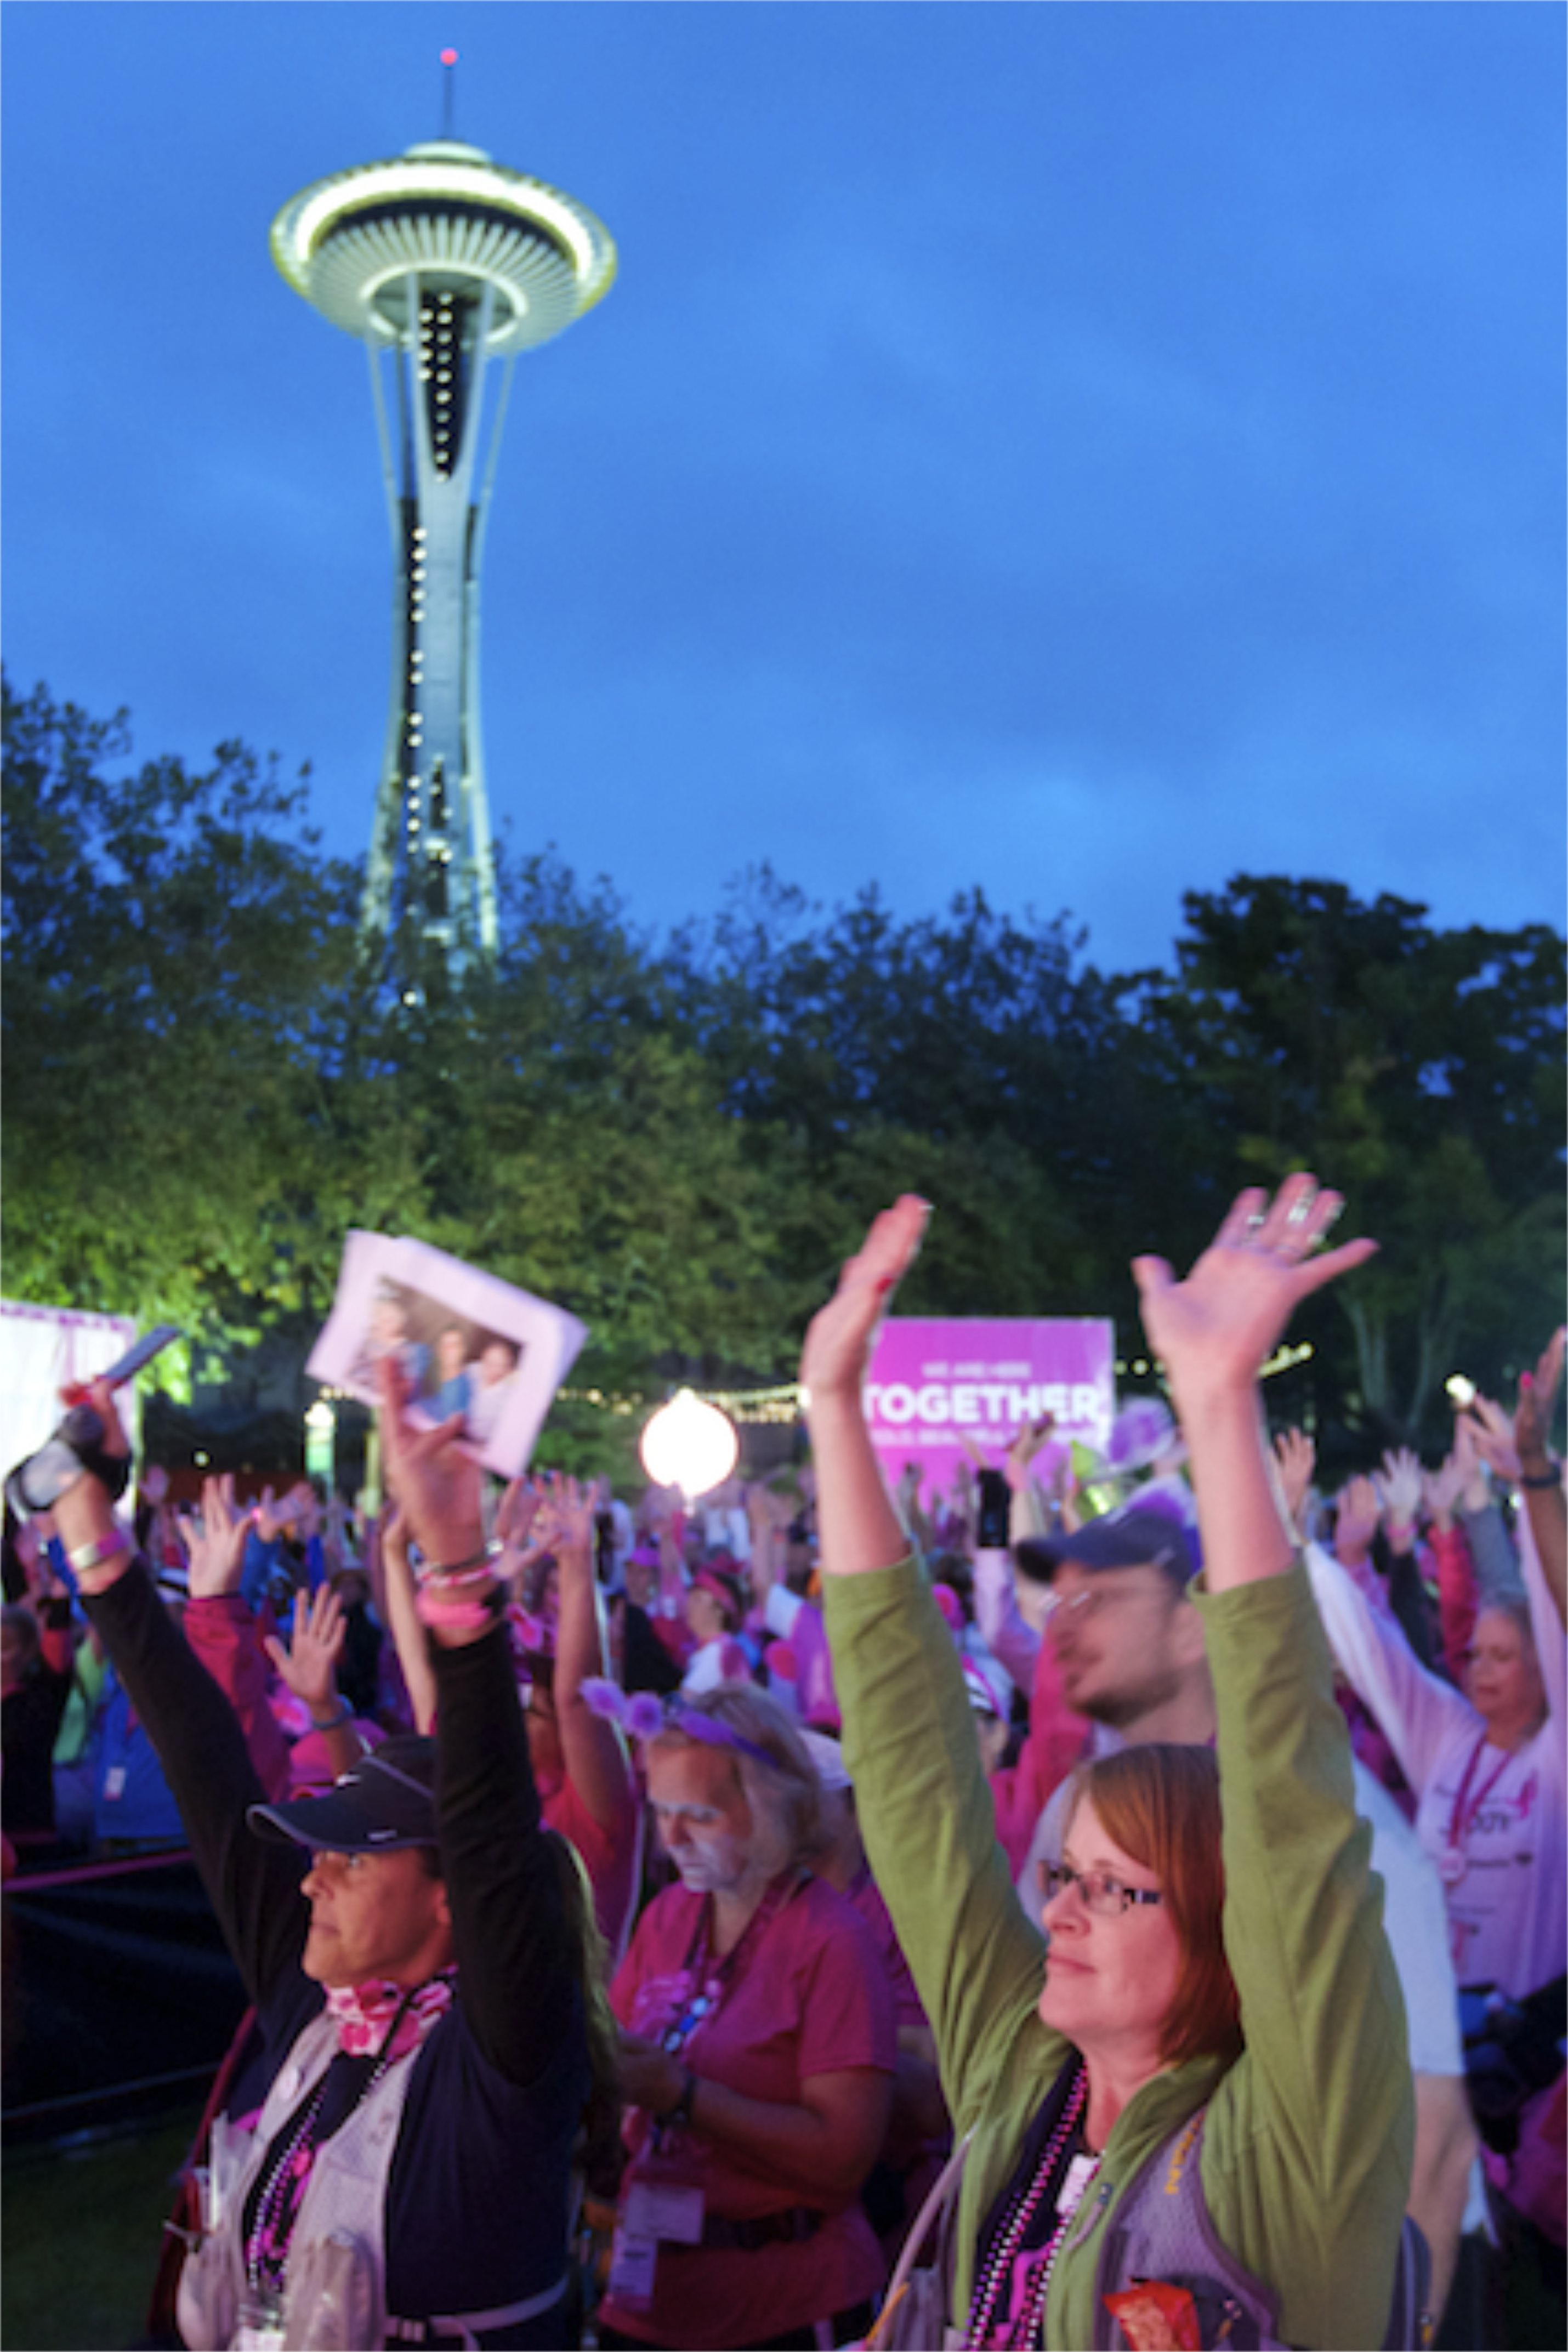 Your Susan G. Komen 3‑Day® journey will begin with an inspiring, emotional Opening Ceremony. You'll walk through the shaded neighborhoods of Seattle's suburbs, and spend two fun-filled nights at our Komen 3‑Day camp, bonding with your fellow walkers.